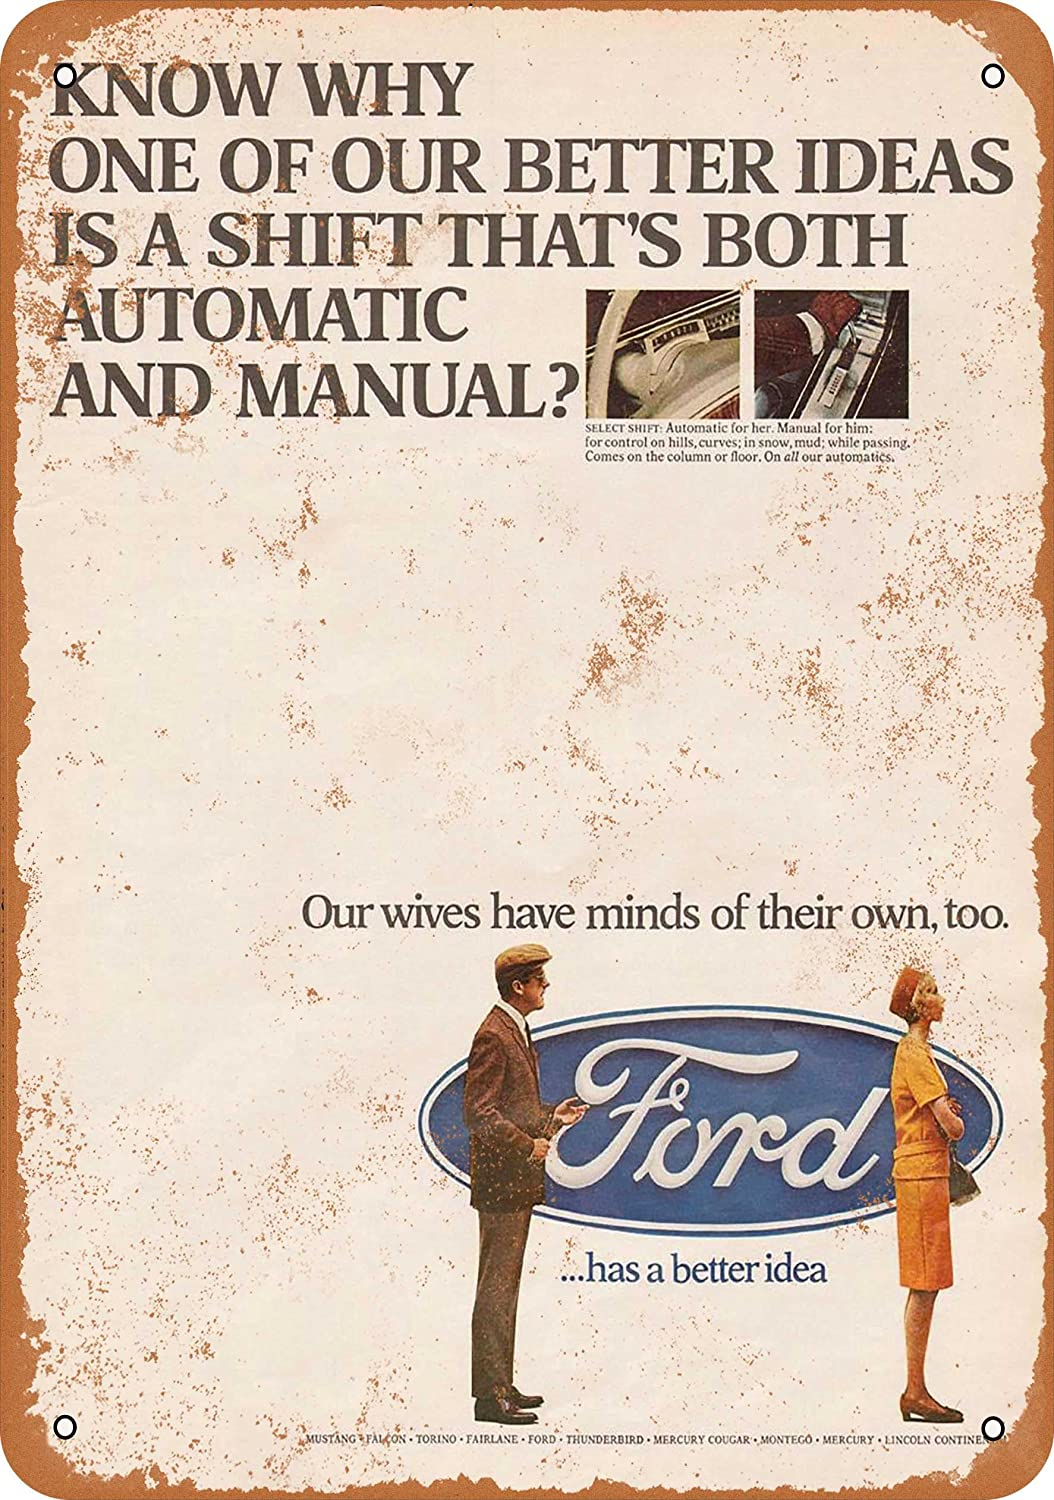 Amazon.com: Wall-Color 7 x 10 METAL SIGN - 1967 Ford Automatic and Manual  Shifting - Vintage Look Reproduction: Home & Kitchen